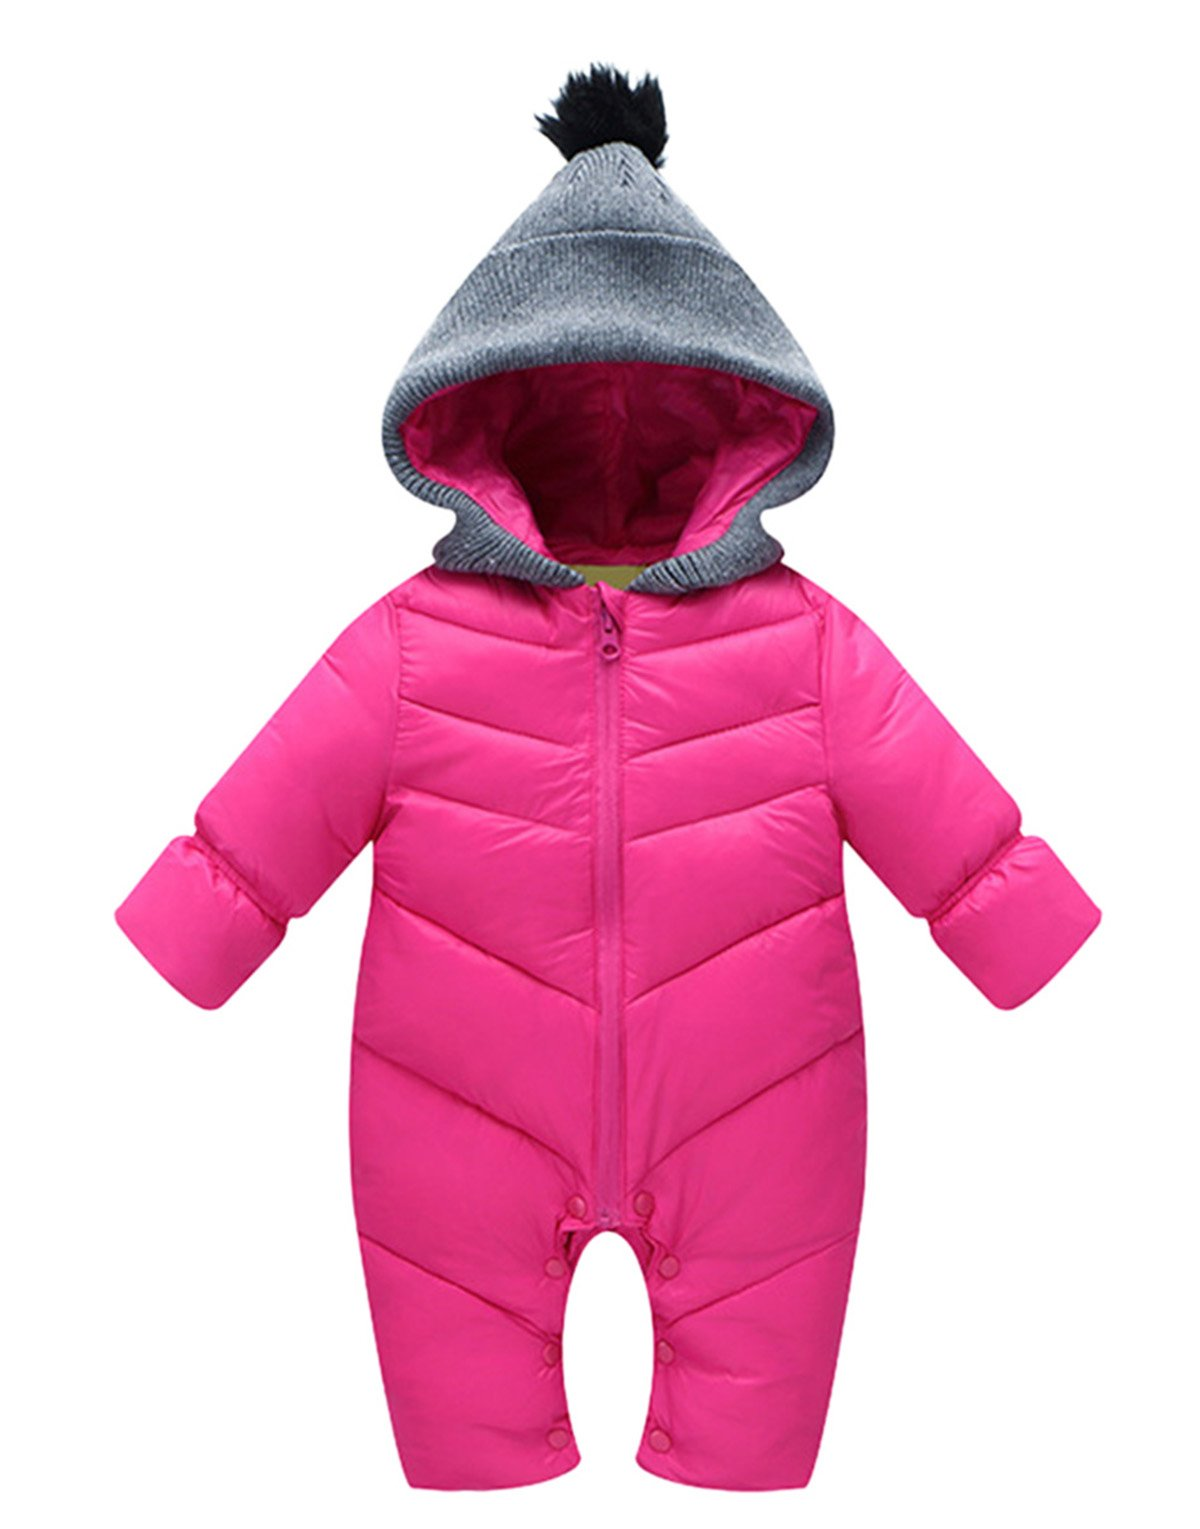 Ohrwurm Unisex Baby Winter Snowsuit Zipped Hooded Thick Jumpsuit Romper One Piece (6-12 Months, Rose Pink) by Ohrwurm